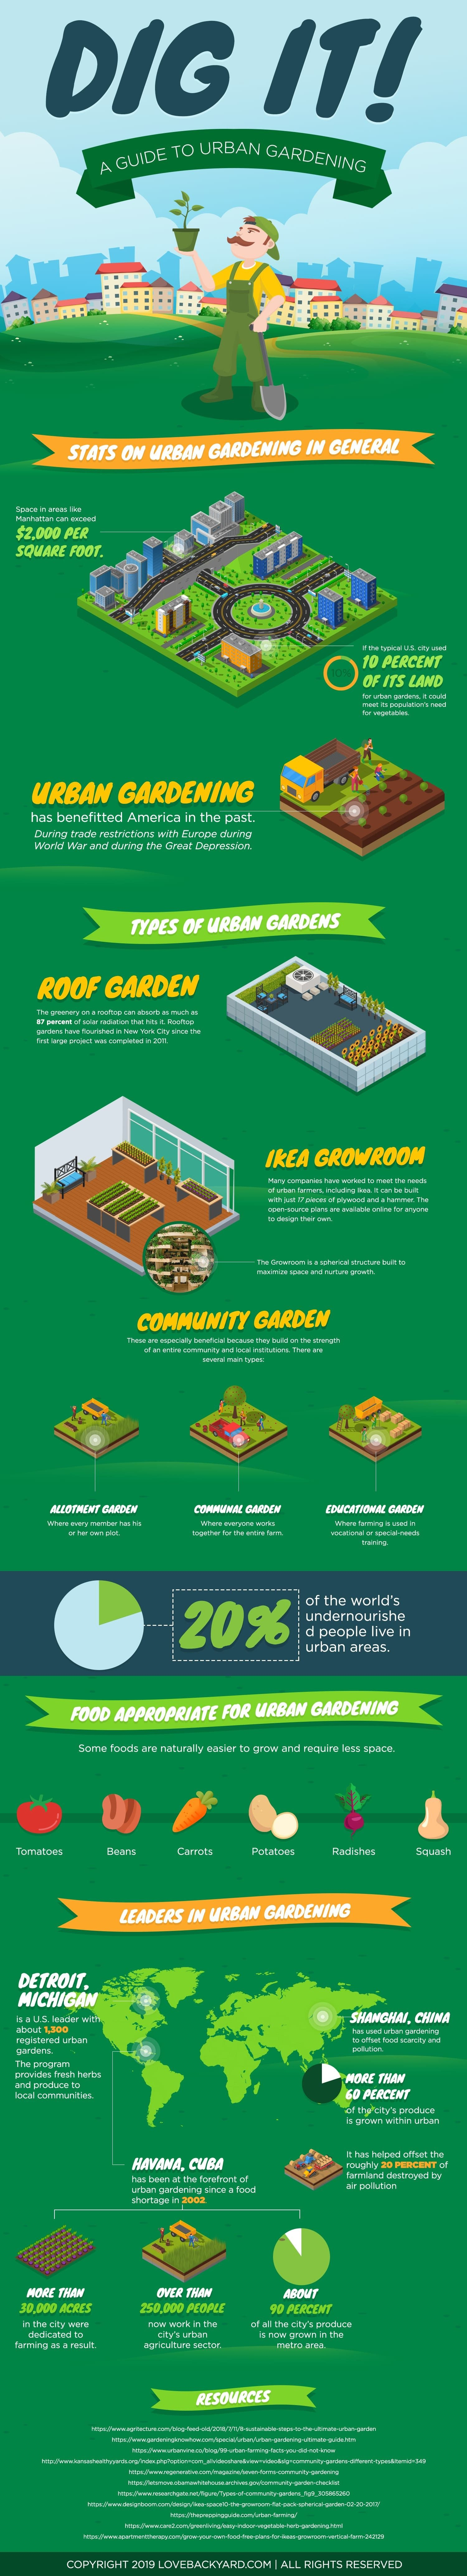 Dig it A Guide to Urban Gardening